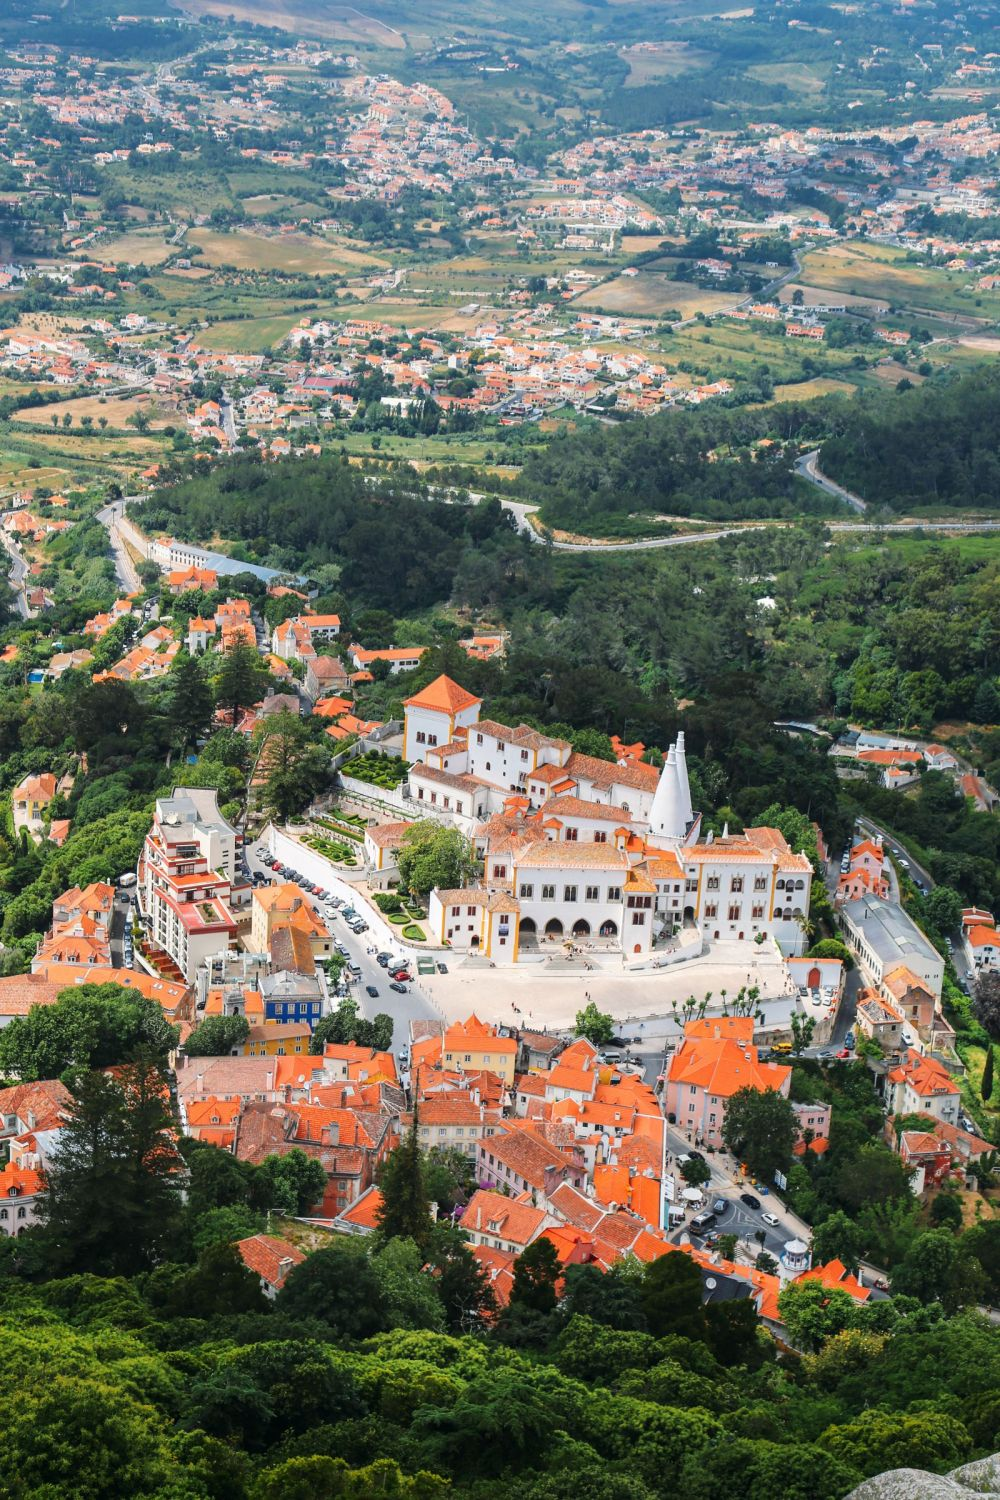 The Moorish Castle, Palace of Sintra And Pena Park – 3 Beautiful Places To See In Sintra, Portugal (8)